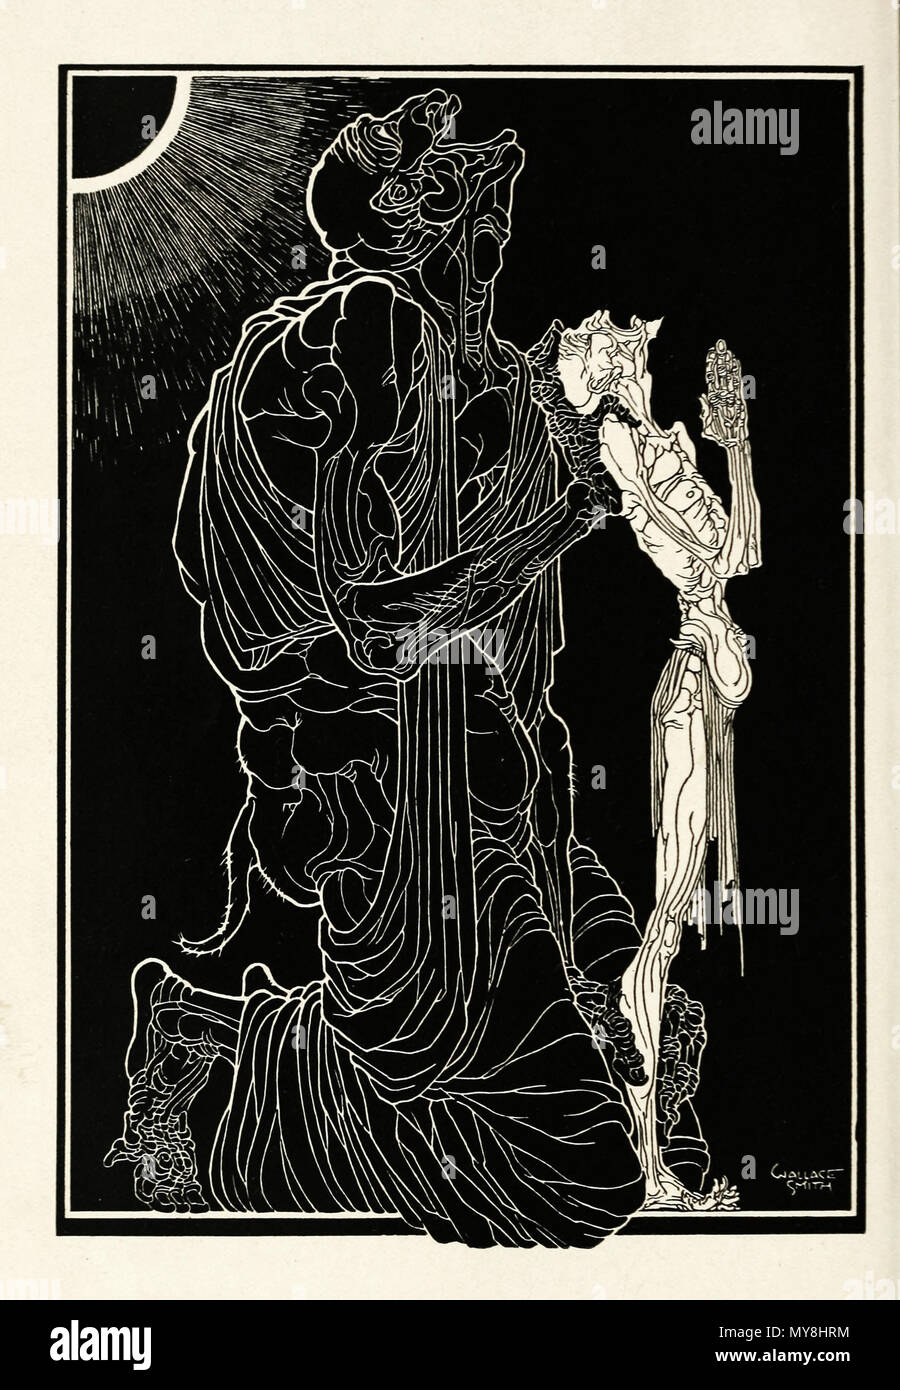 . Anglais : Blackguard Frontispice illustration . 1923. Wallace Smith 76 Blackguard frontispice Photo Stock